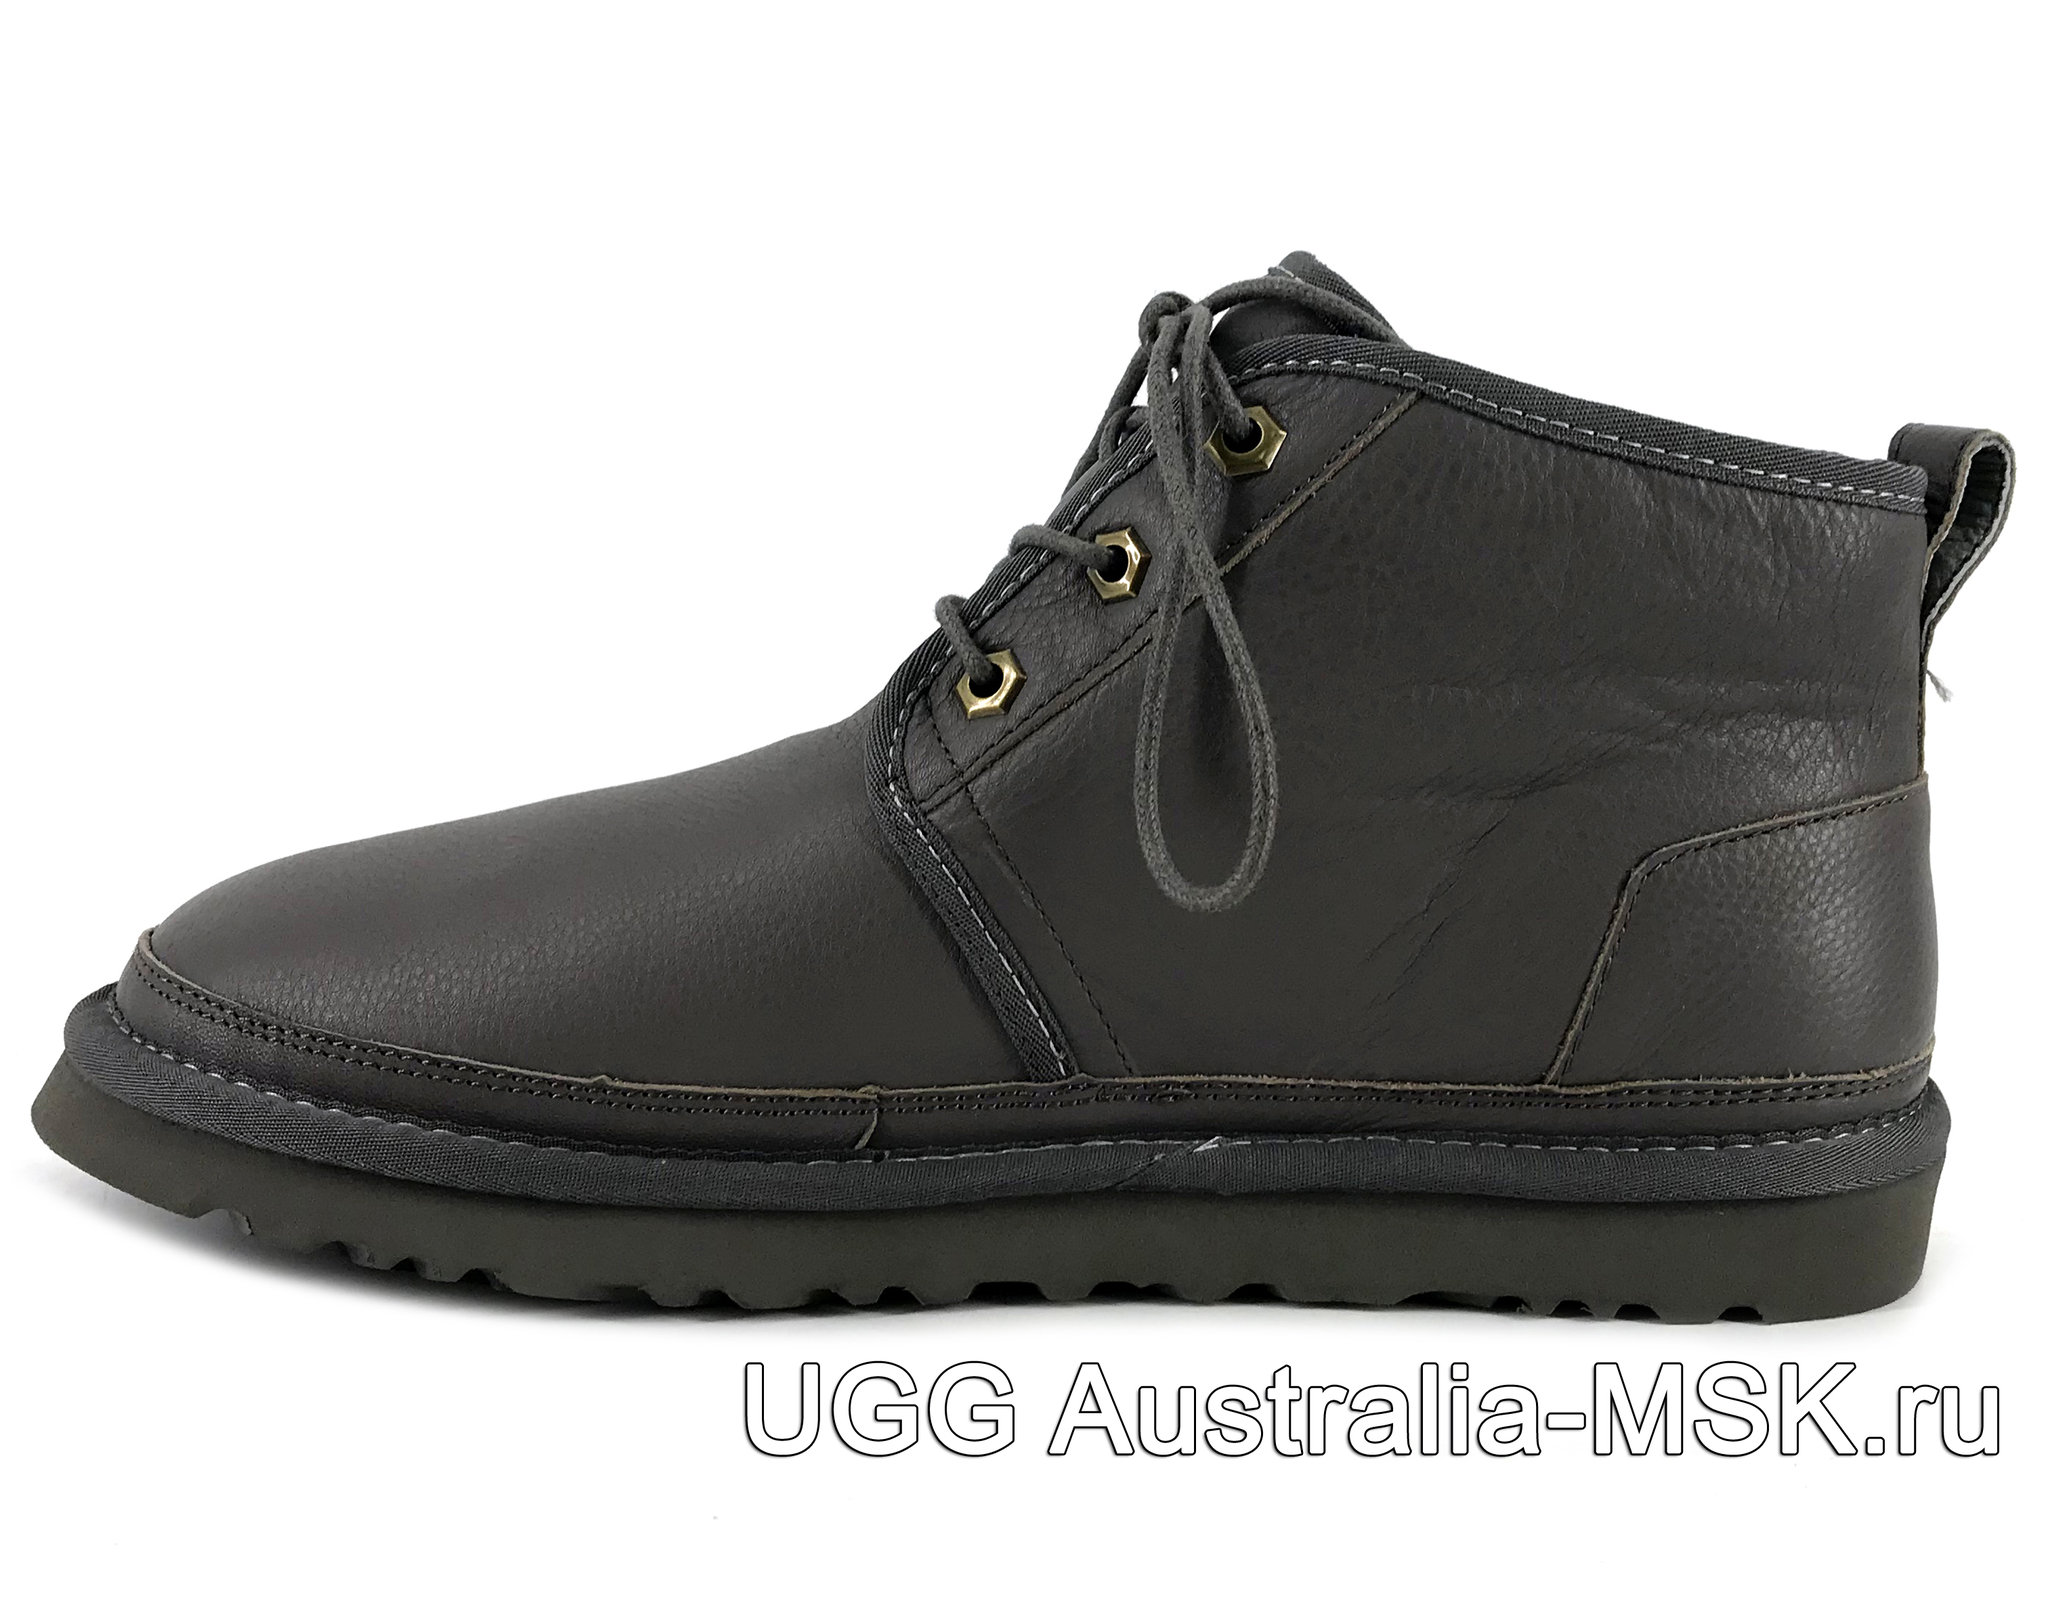 UGG Men's Neumel Metallic Grey